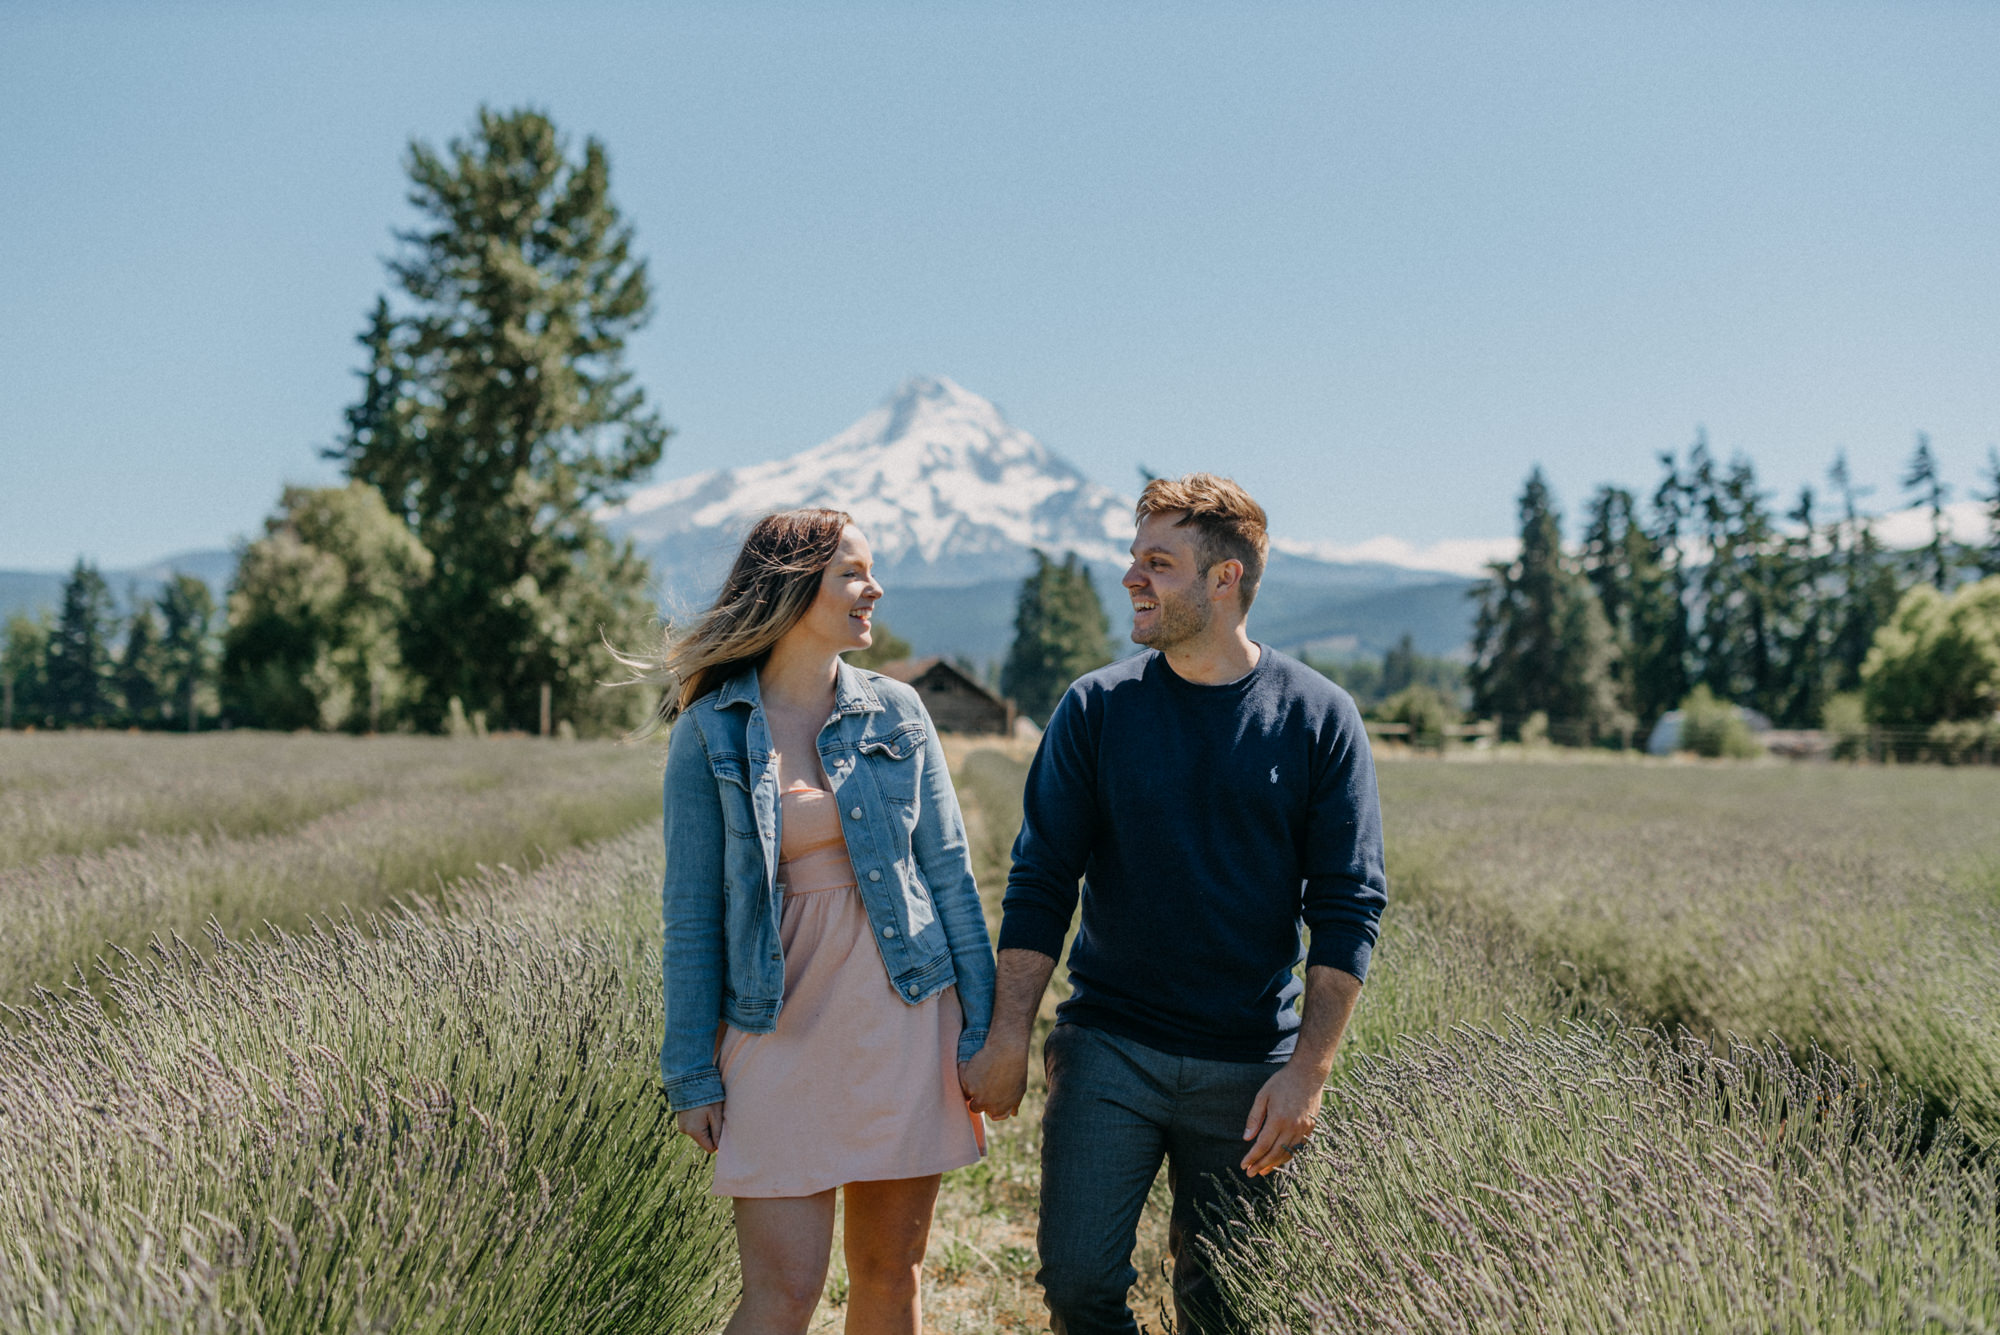 2-Mt-hood-lavender-farms-engagment-couple-summer-6927.jpg